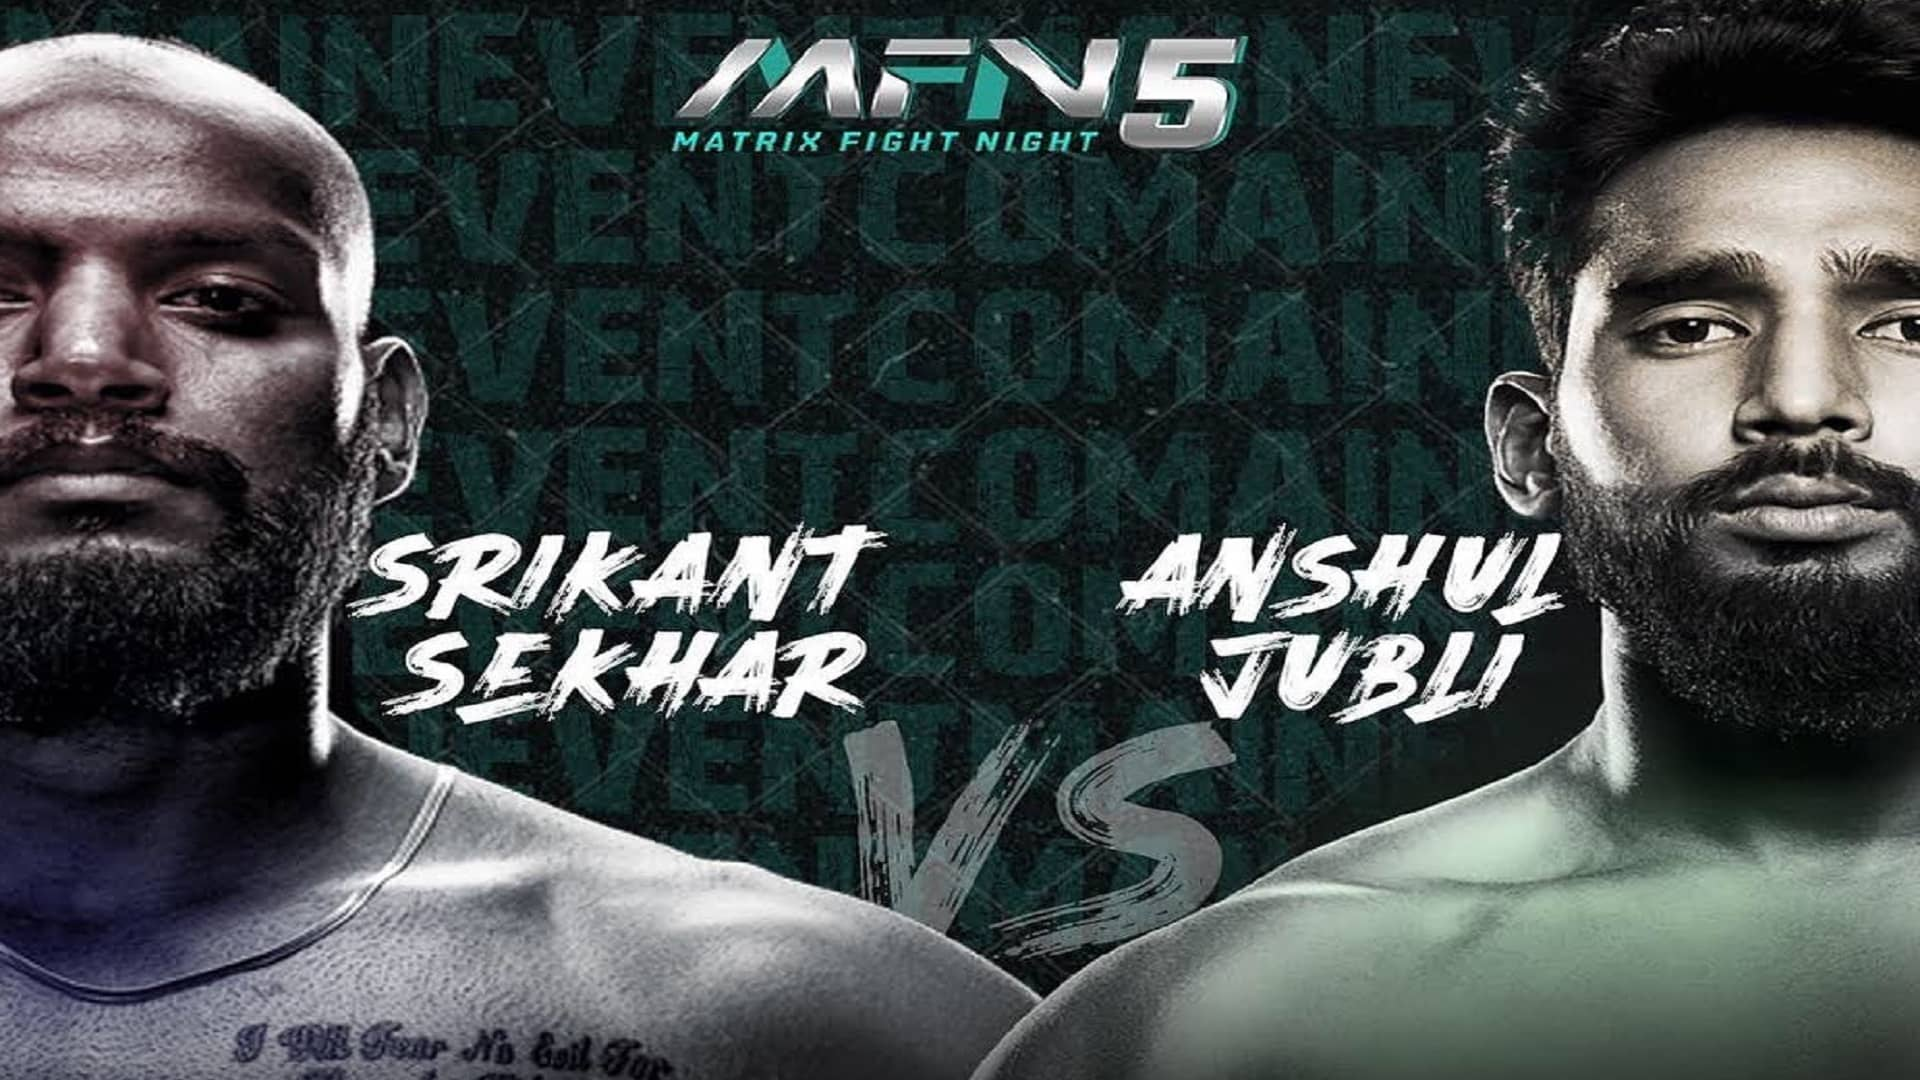 https://lockerroom.in/blog/view/Matrix-Fight-Night-5-Srikant-Sekhar-Anshul-Jubli